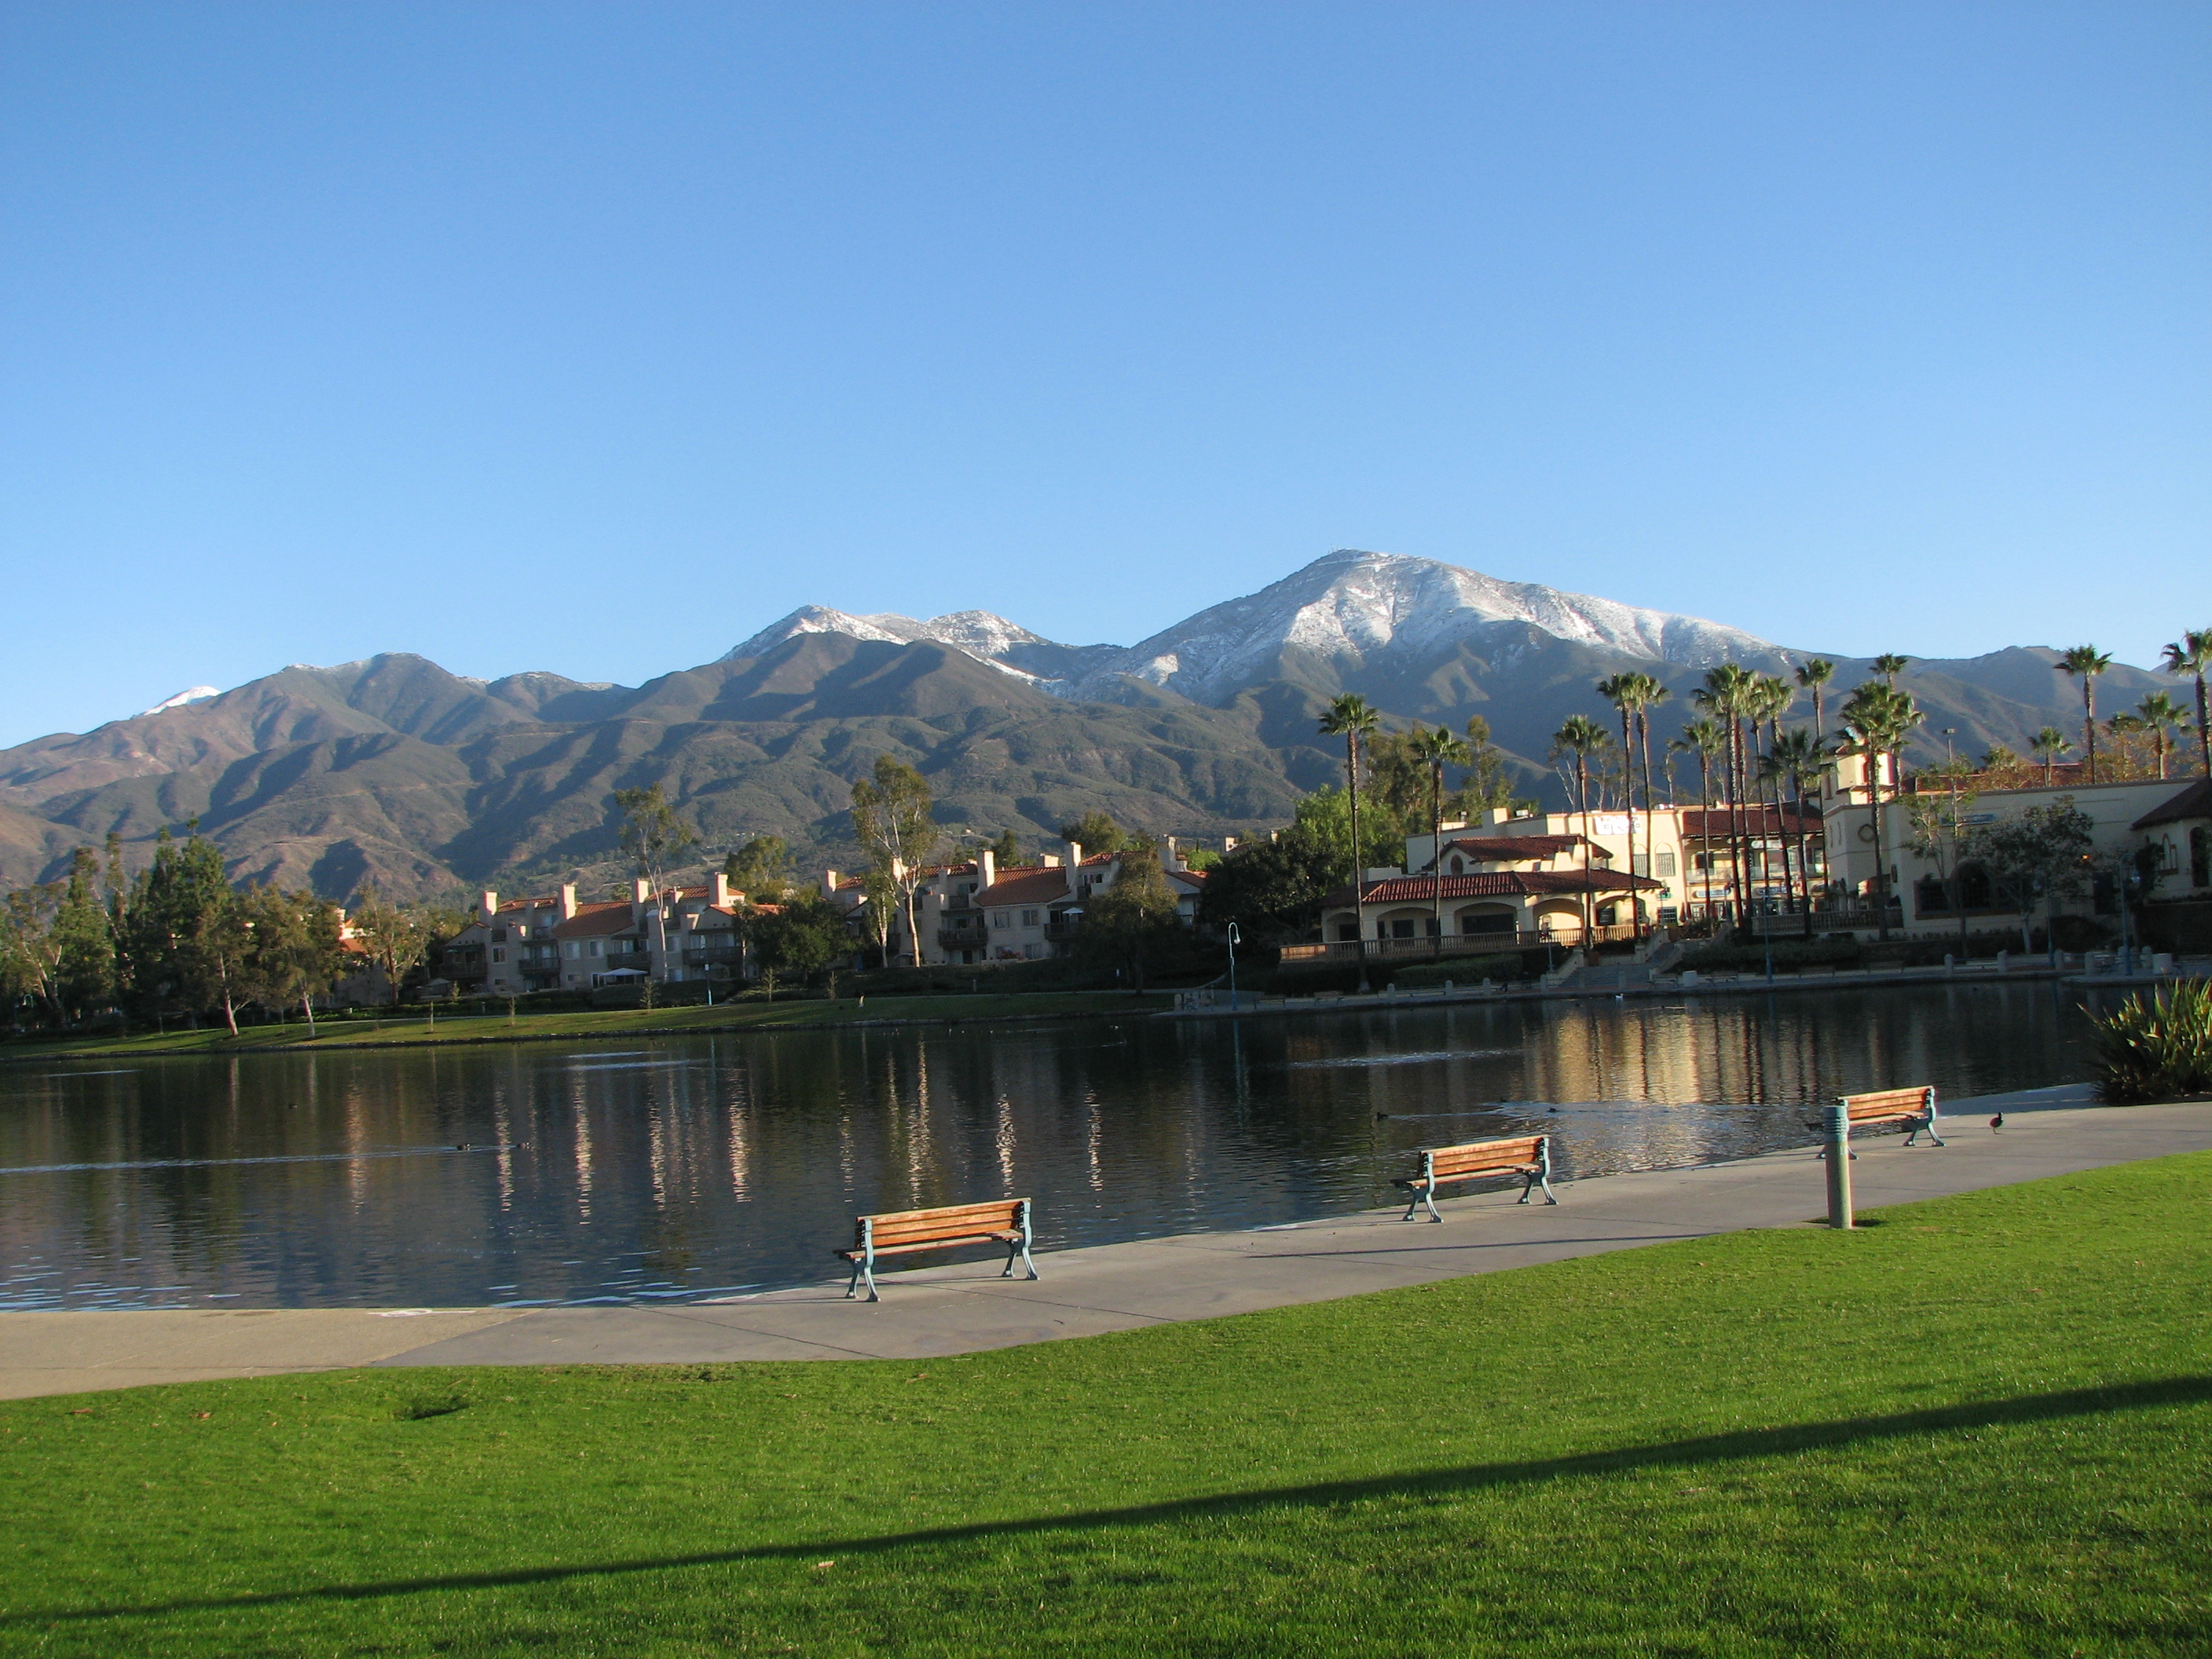 Rancho Santa Margarita Lake Or Lago Santa Margarita